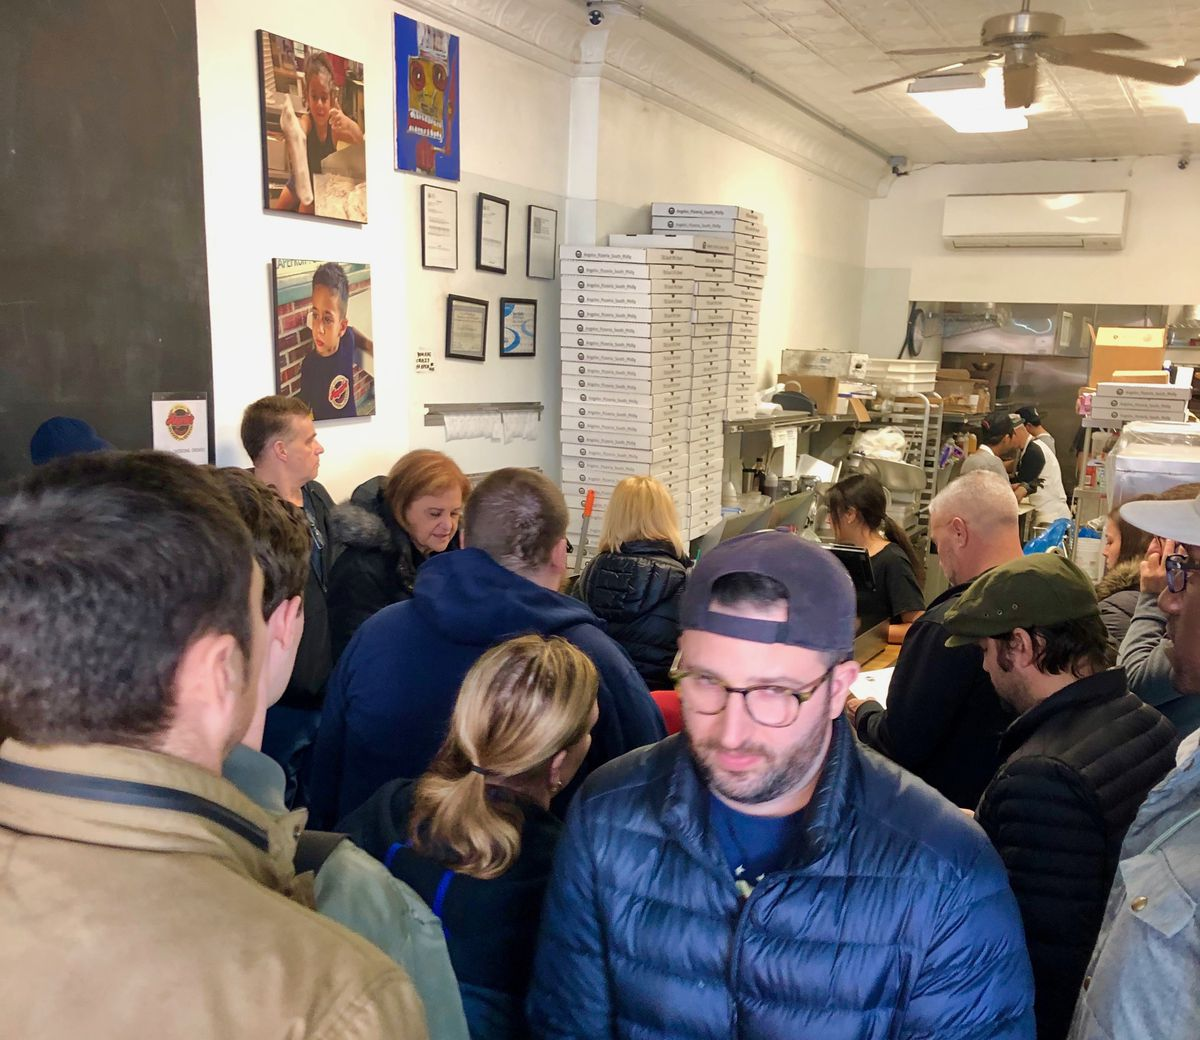 crowded pizza shop